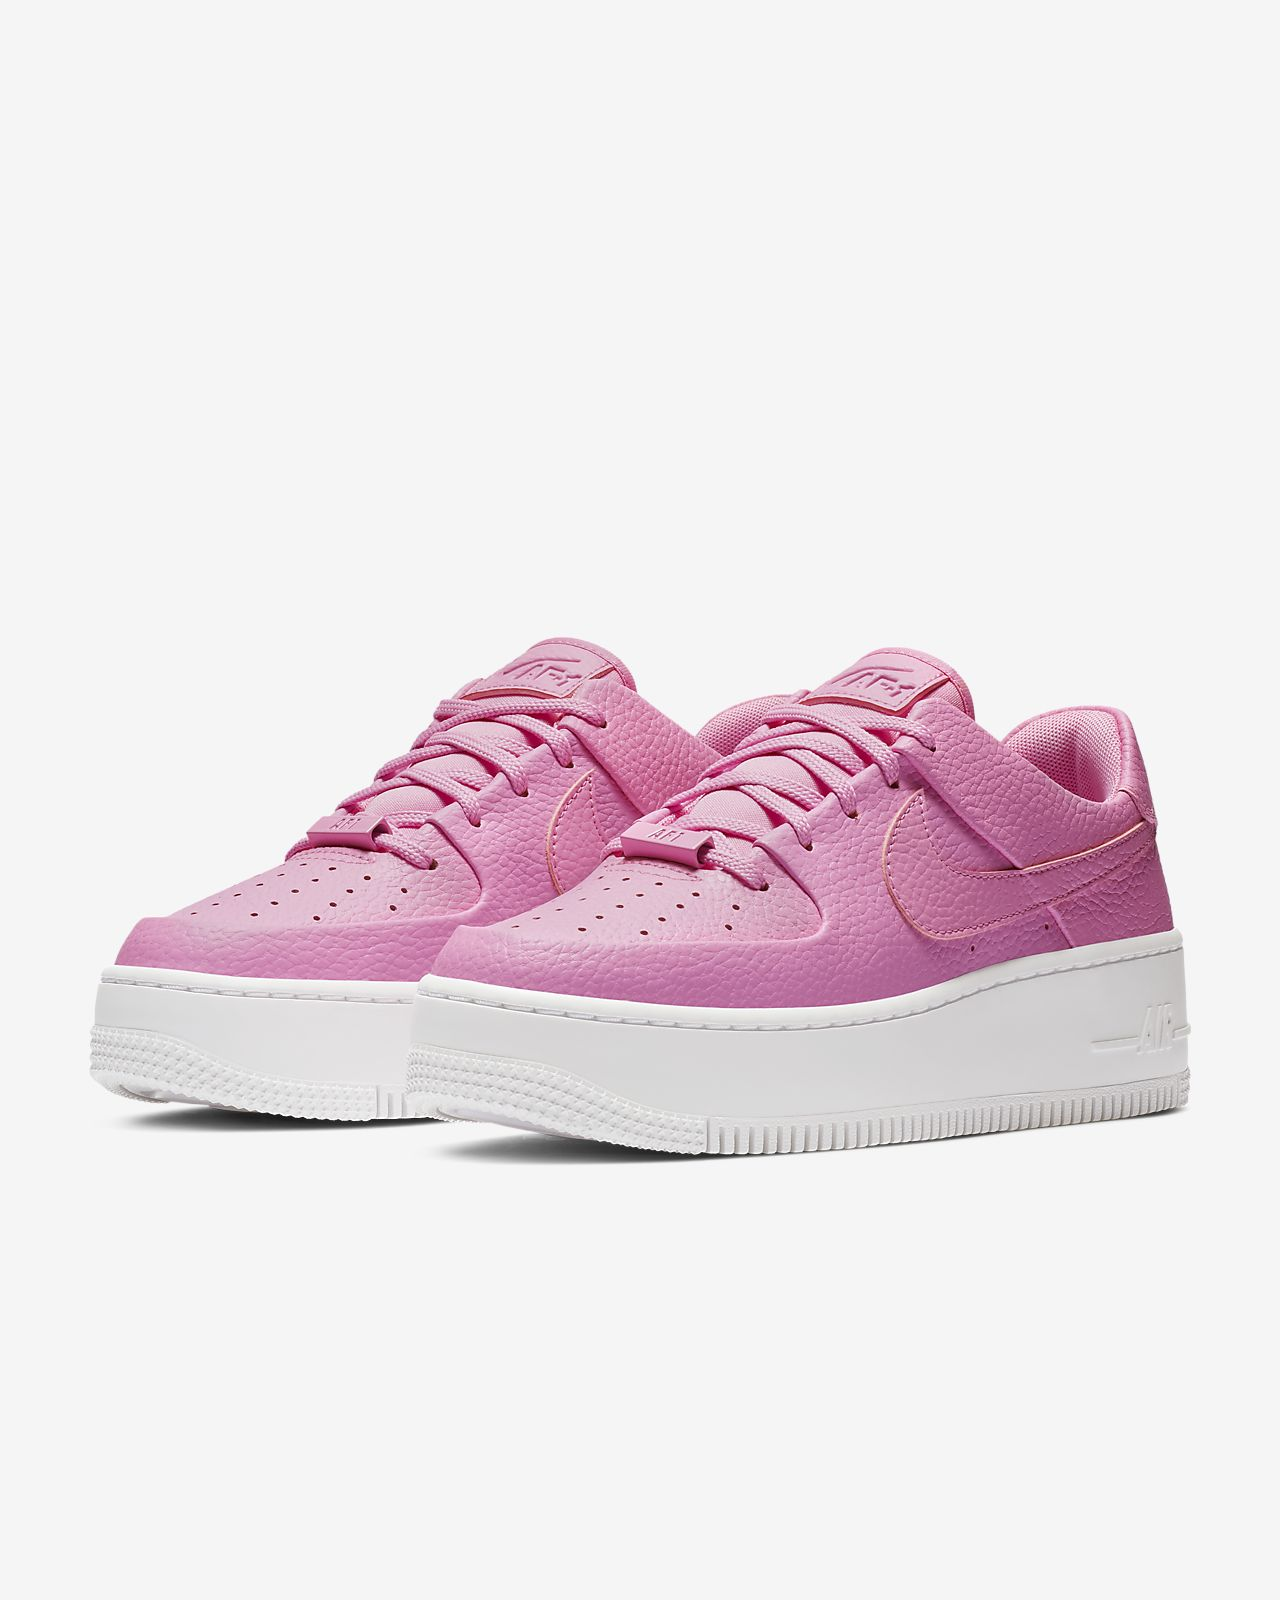 quality design ea6be 0c005 ... Nike Air Force 1 Sage Low Womens Shoe